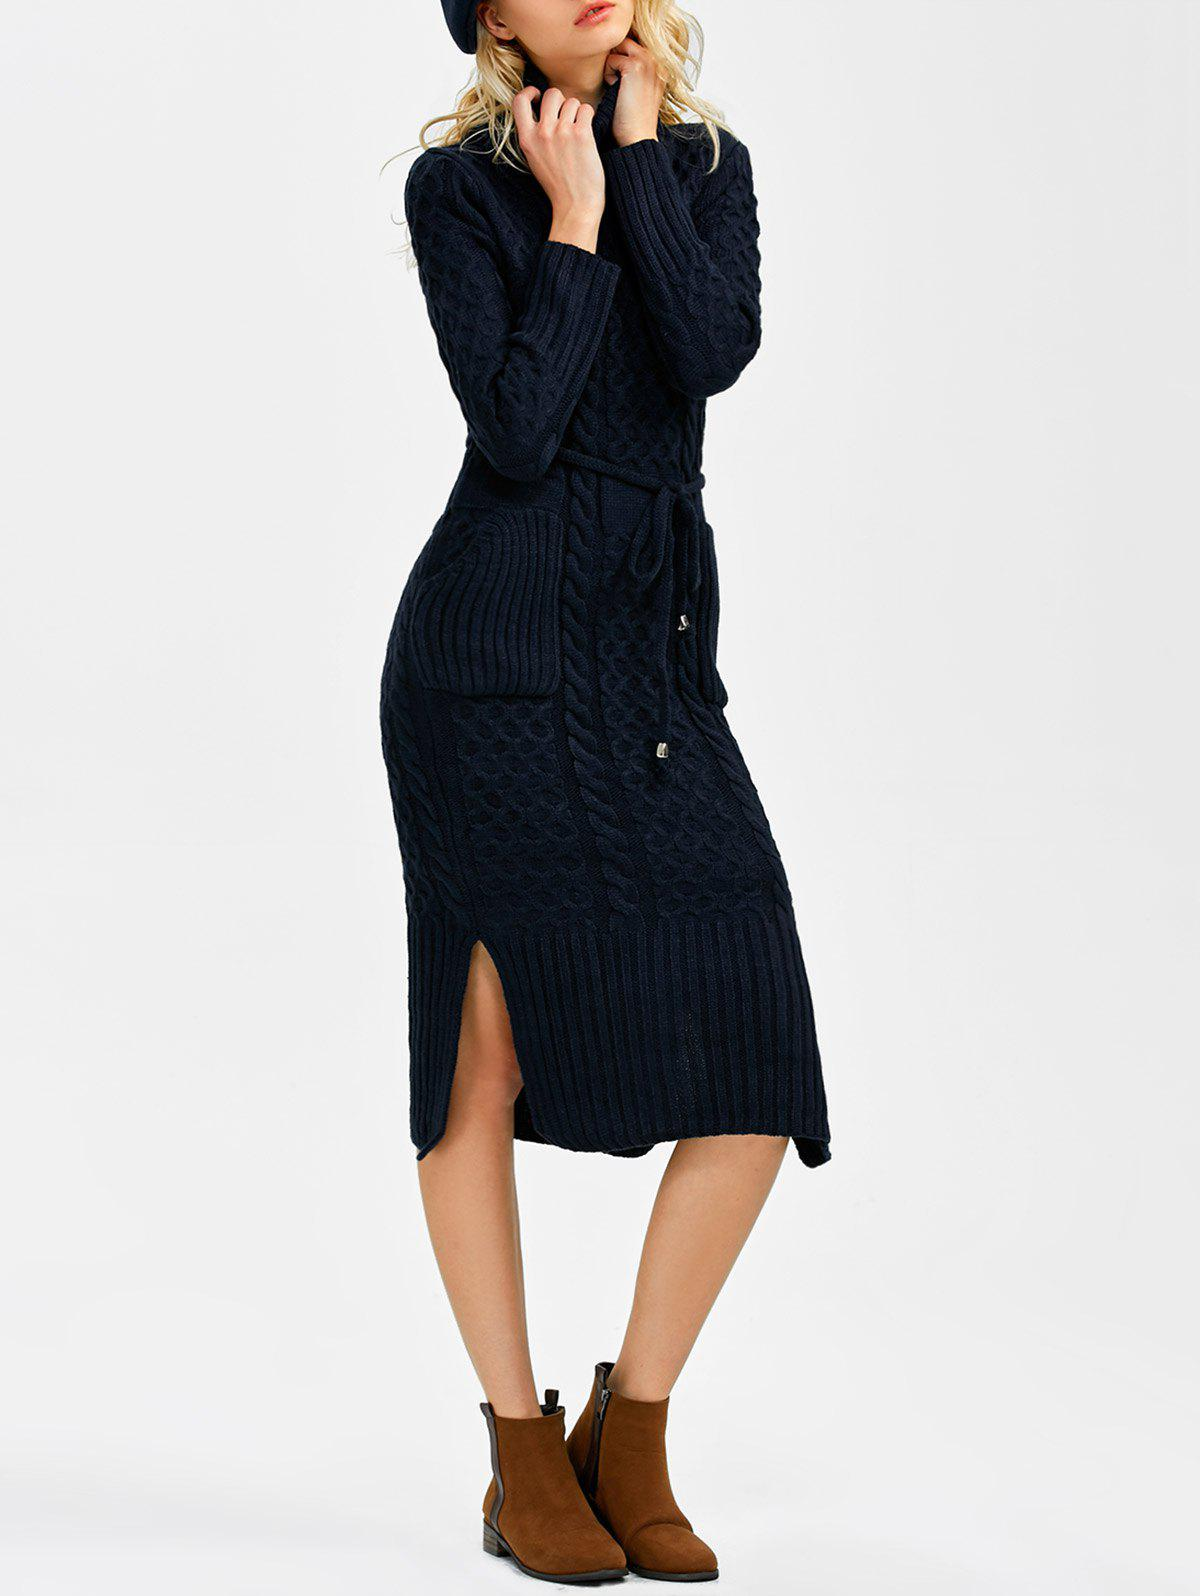 Hot Turtleneck Cable Knit Sweater Dress With Pockets